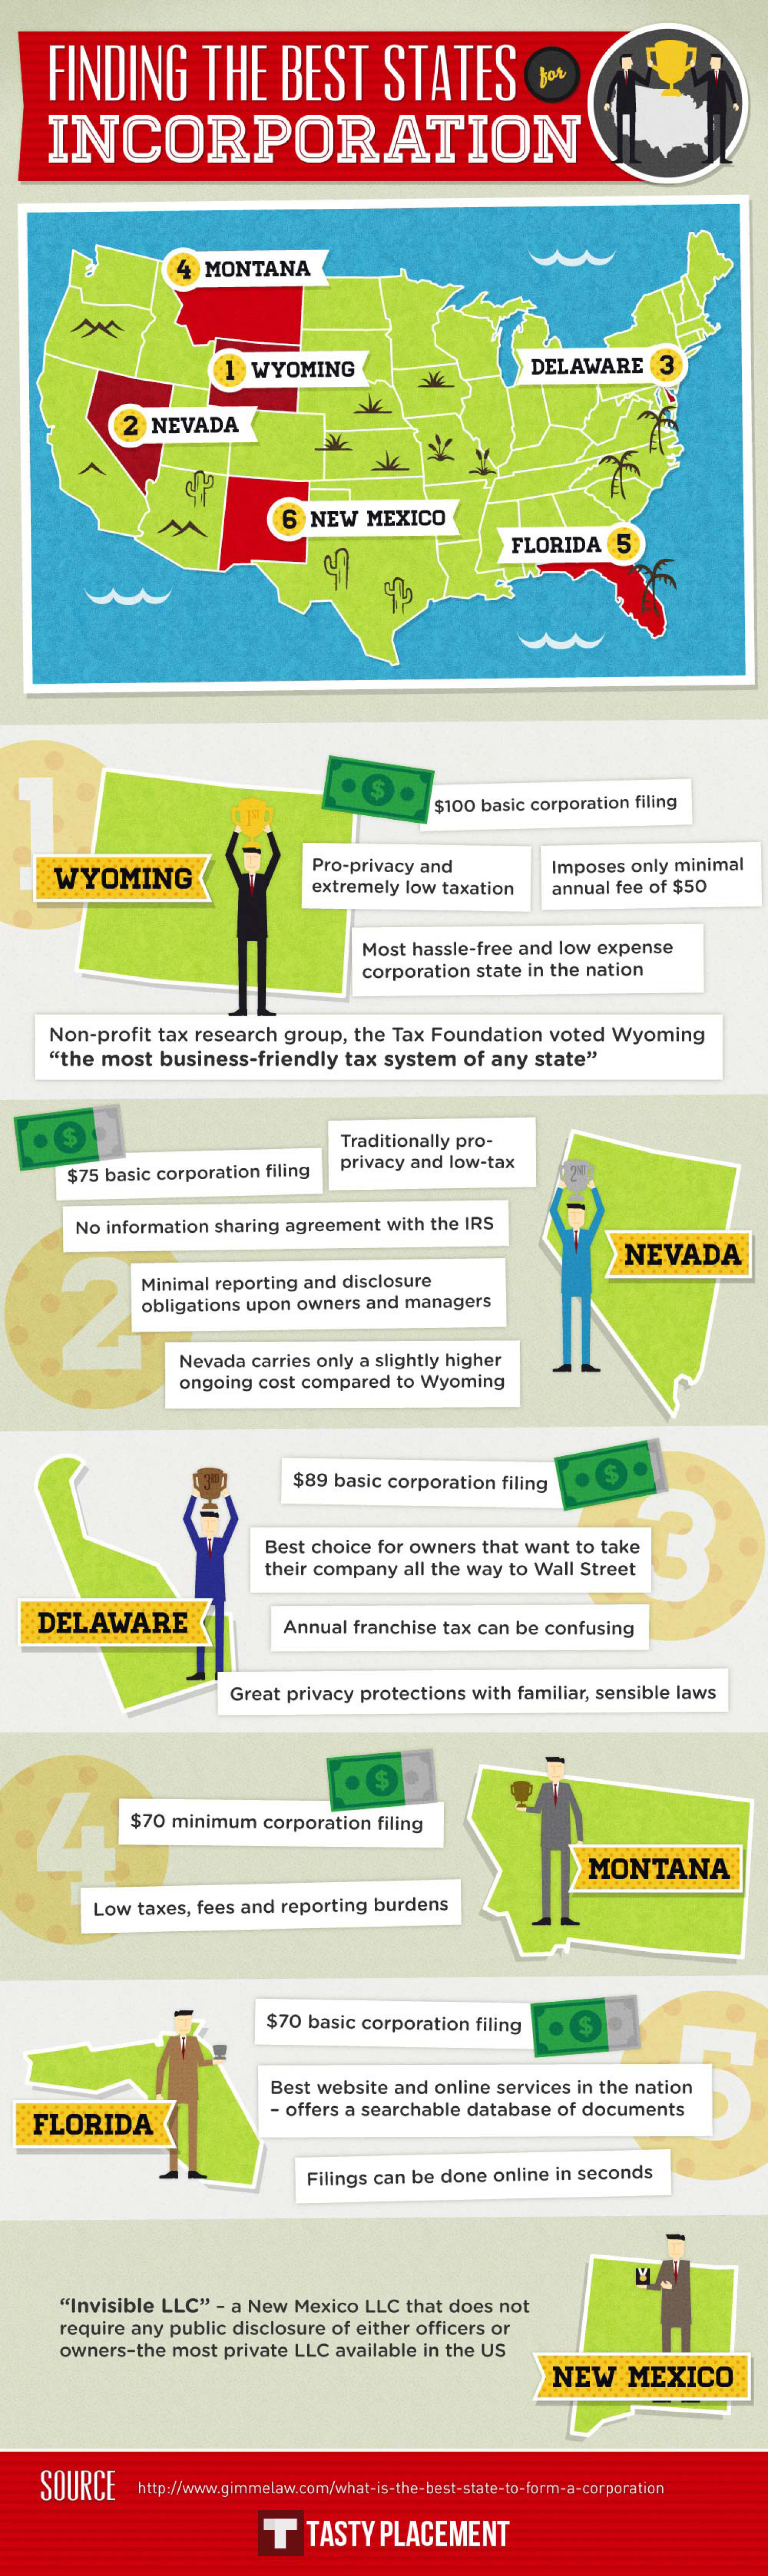 Finding the Best States for Incorporation | Visual.ly